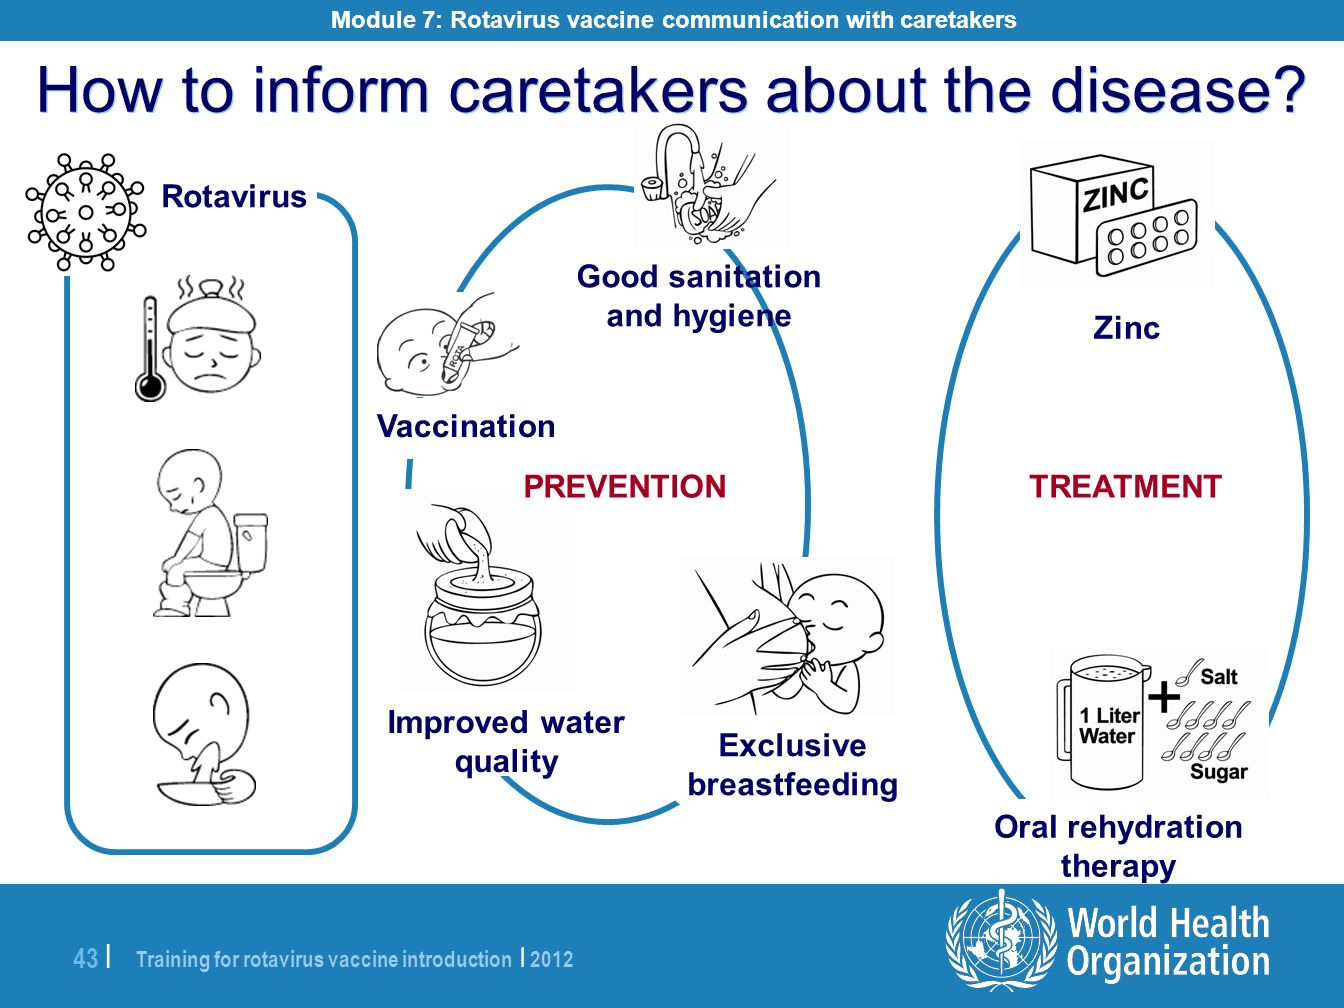 How to inform caretakers about the disease